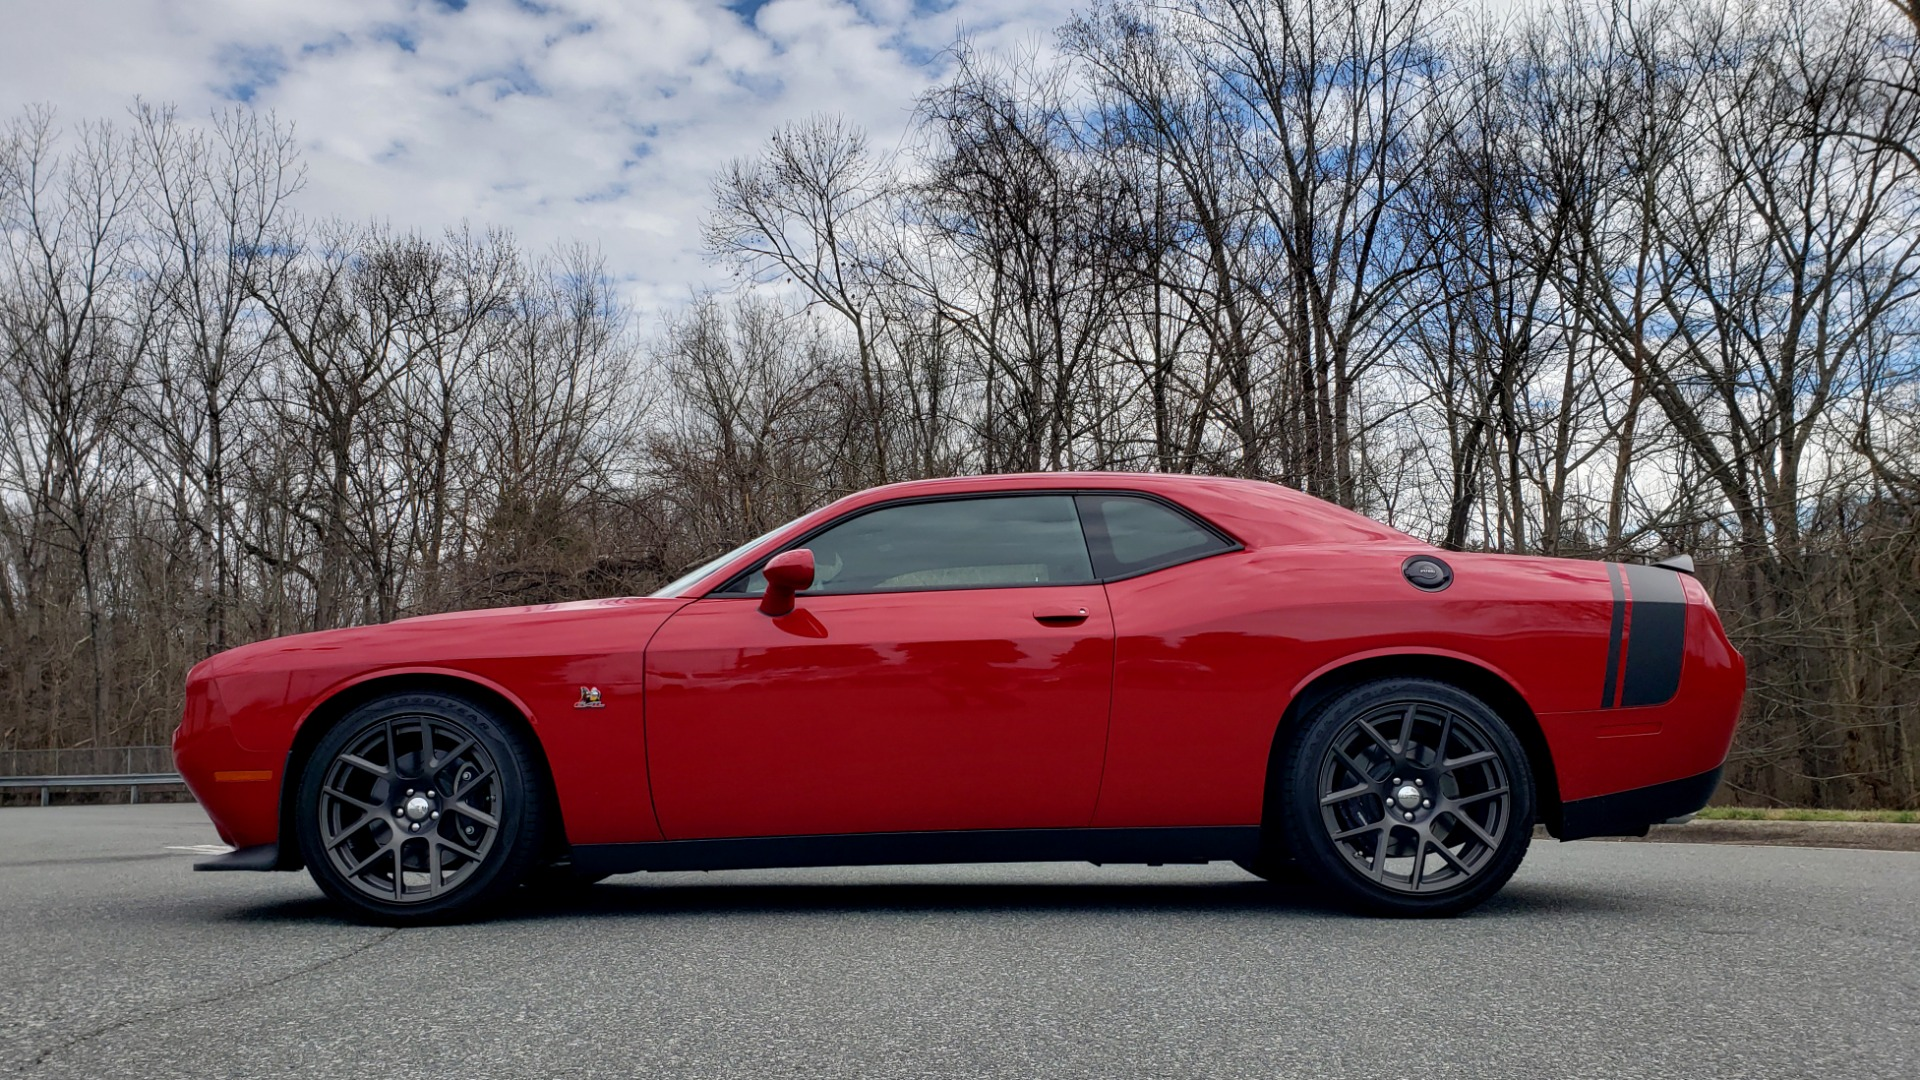 Used 2016 Dodge CHALLENGER R/T SCAT PACK / TECHNOLOGY / ALPINE / 6-SPEED MAN for sale Sold at Formula Imports in Charlotte NC 28227 3